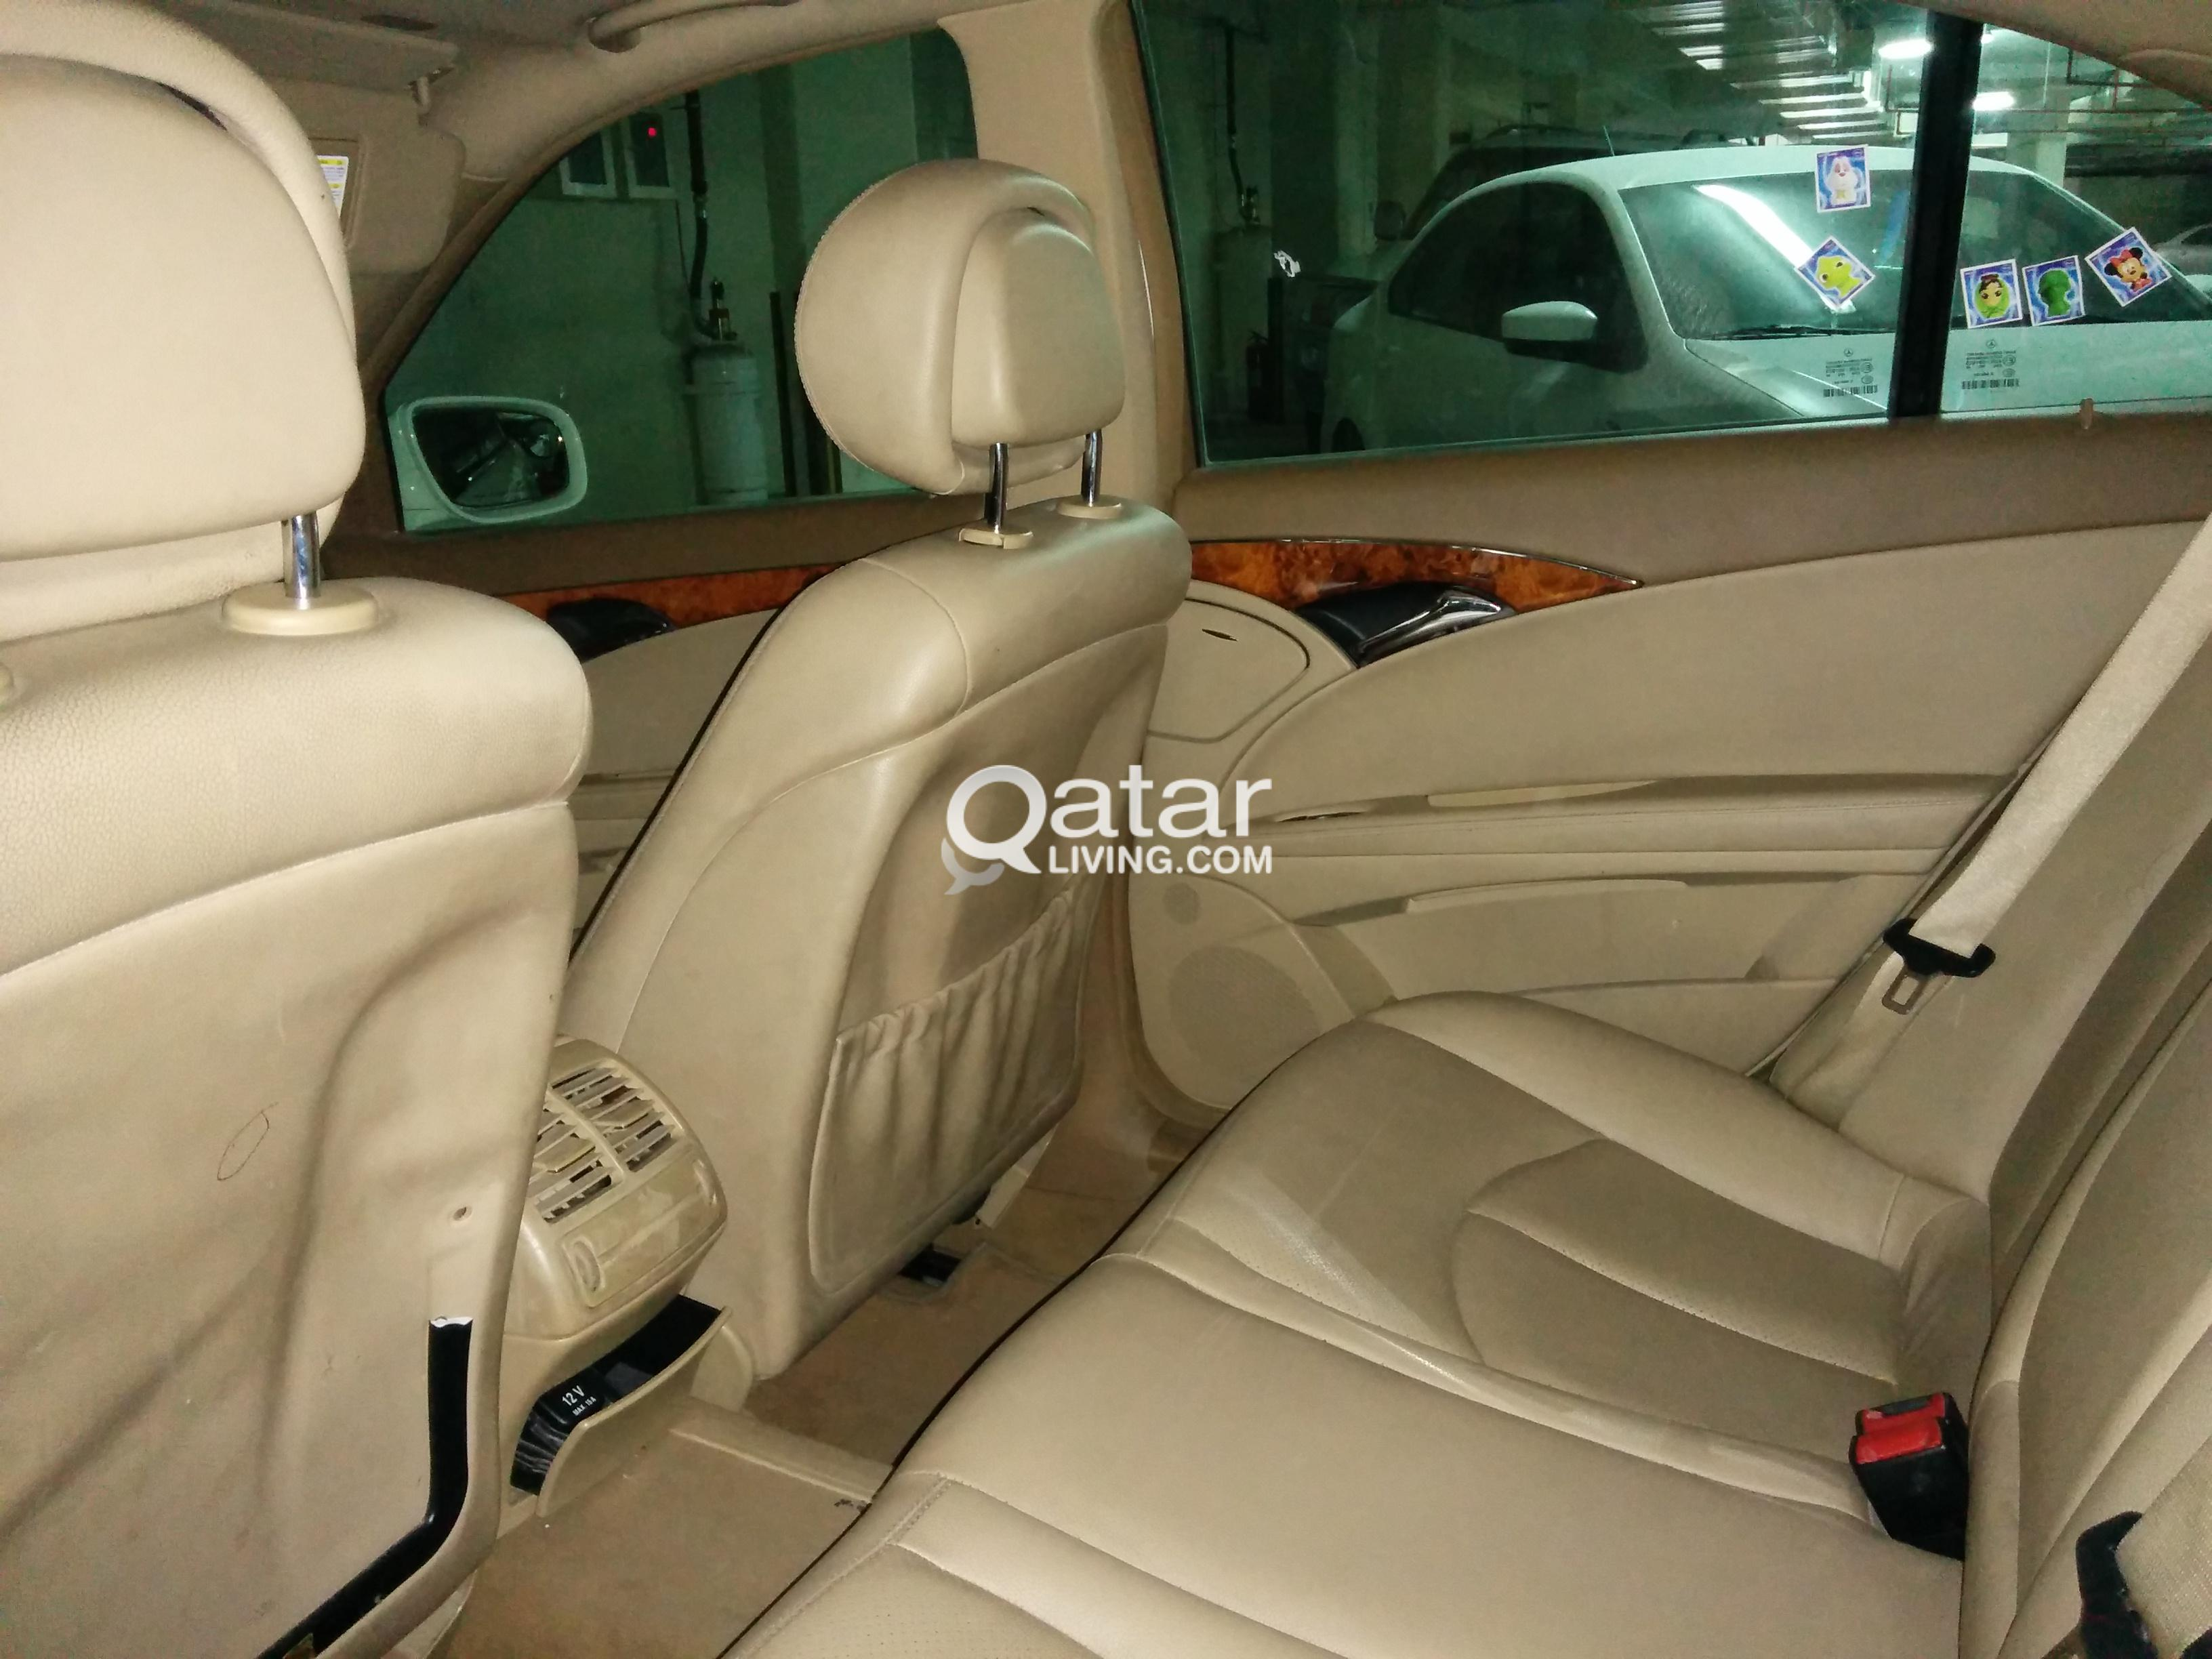 Used 2007 Mercedes Benz E Class 200 Cars For Sale Qatar Living